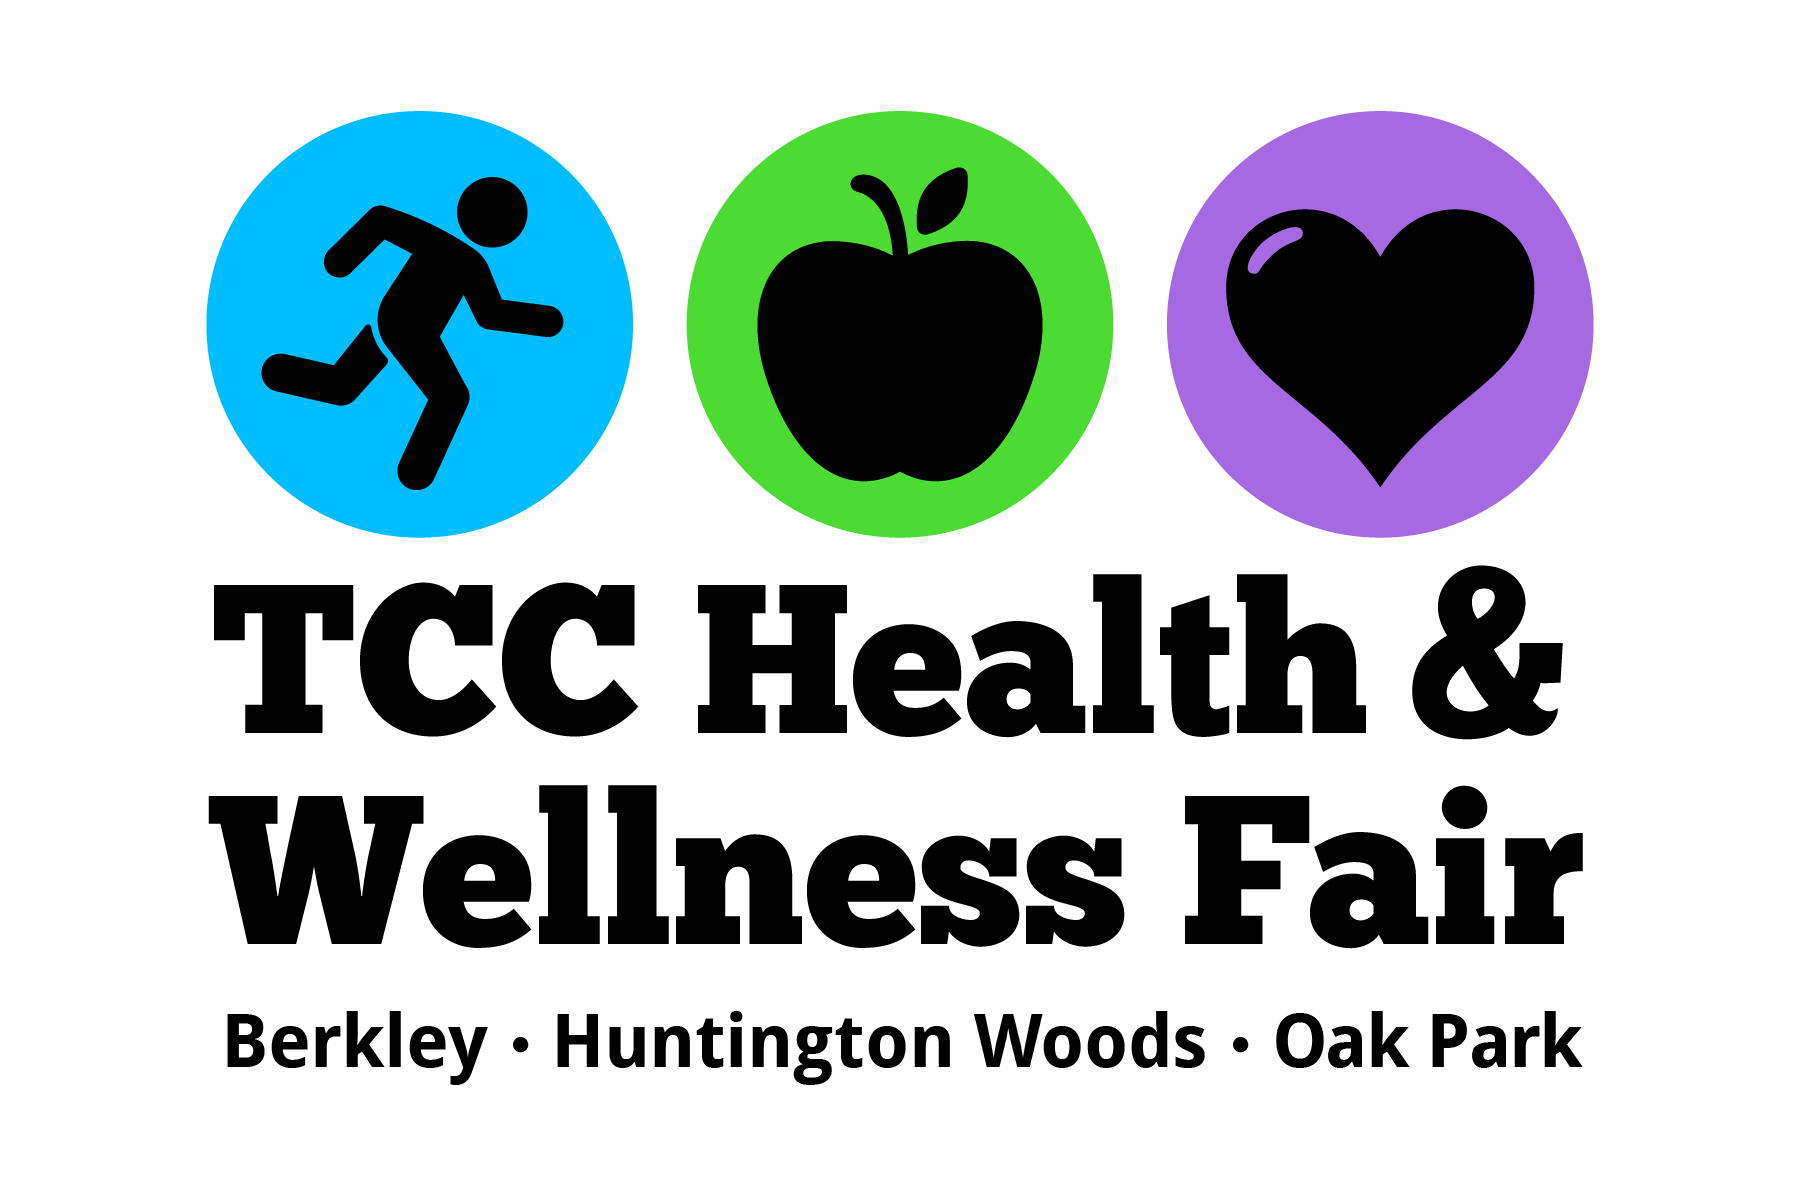 2018 Tcc Health and Wellness_transparent600.png